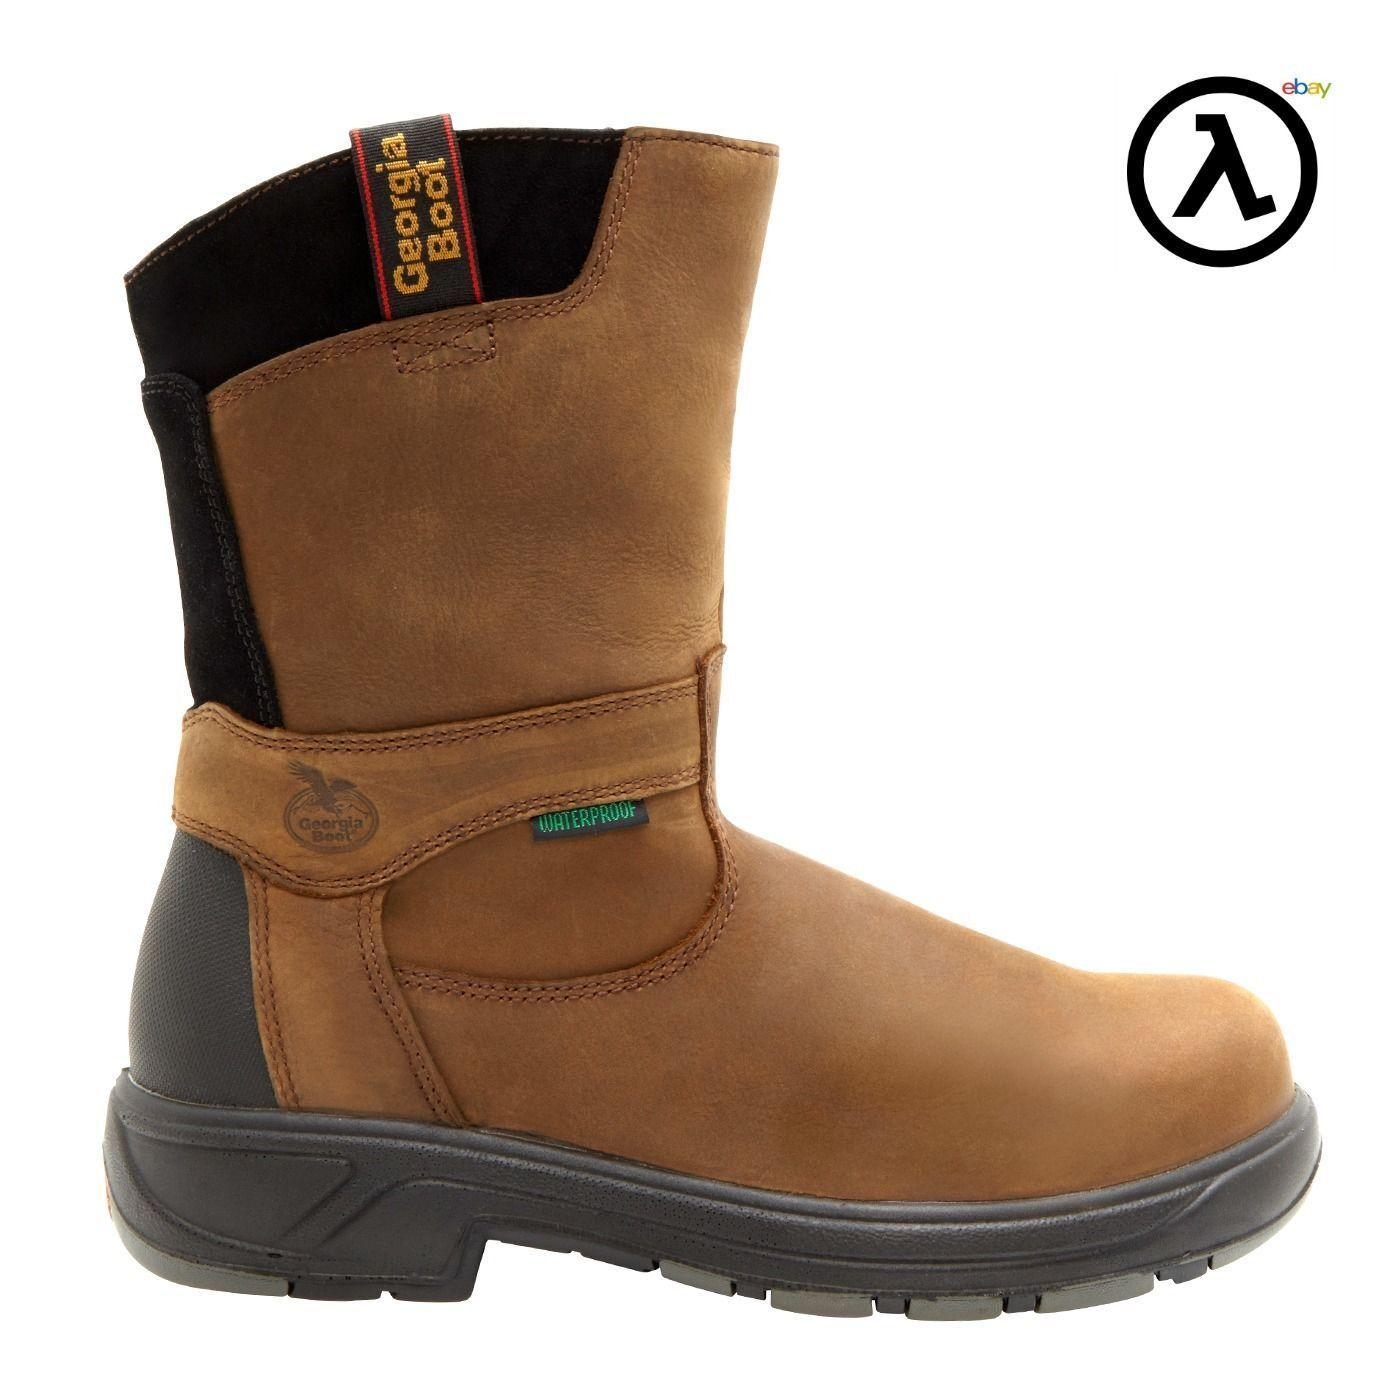 GEORGIA FLXPOINT WATERPROOF COMPOSITE TOE WORK BOOTS G5644 - ALL SIZES - NEW